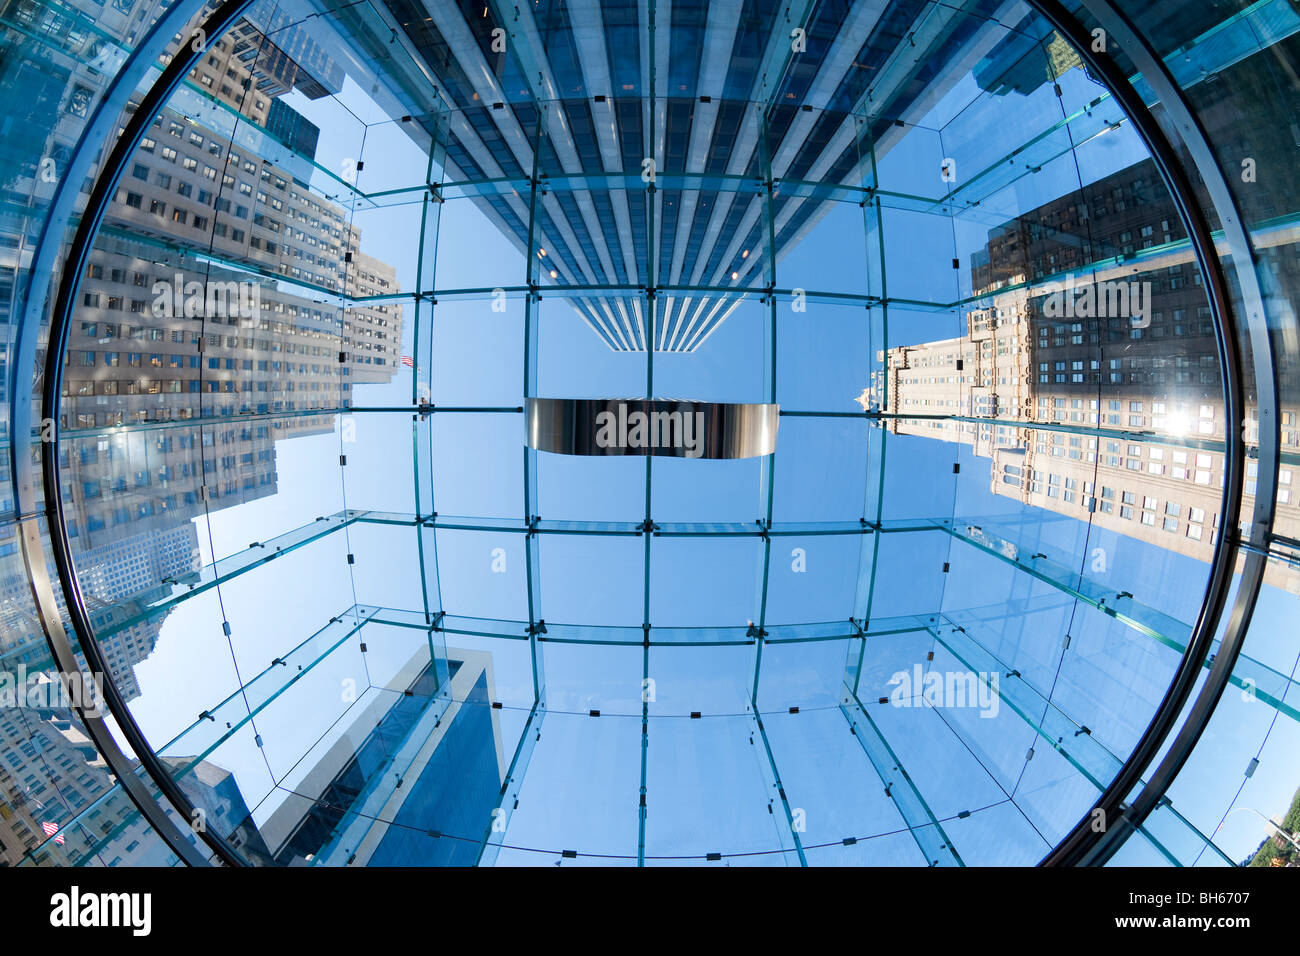 USA, New York City, Manhattan, skyscrapers of Fifth Avenue viewed from below through a glass roofed ceiling Stock Photo